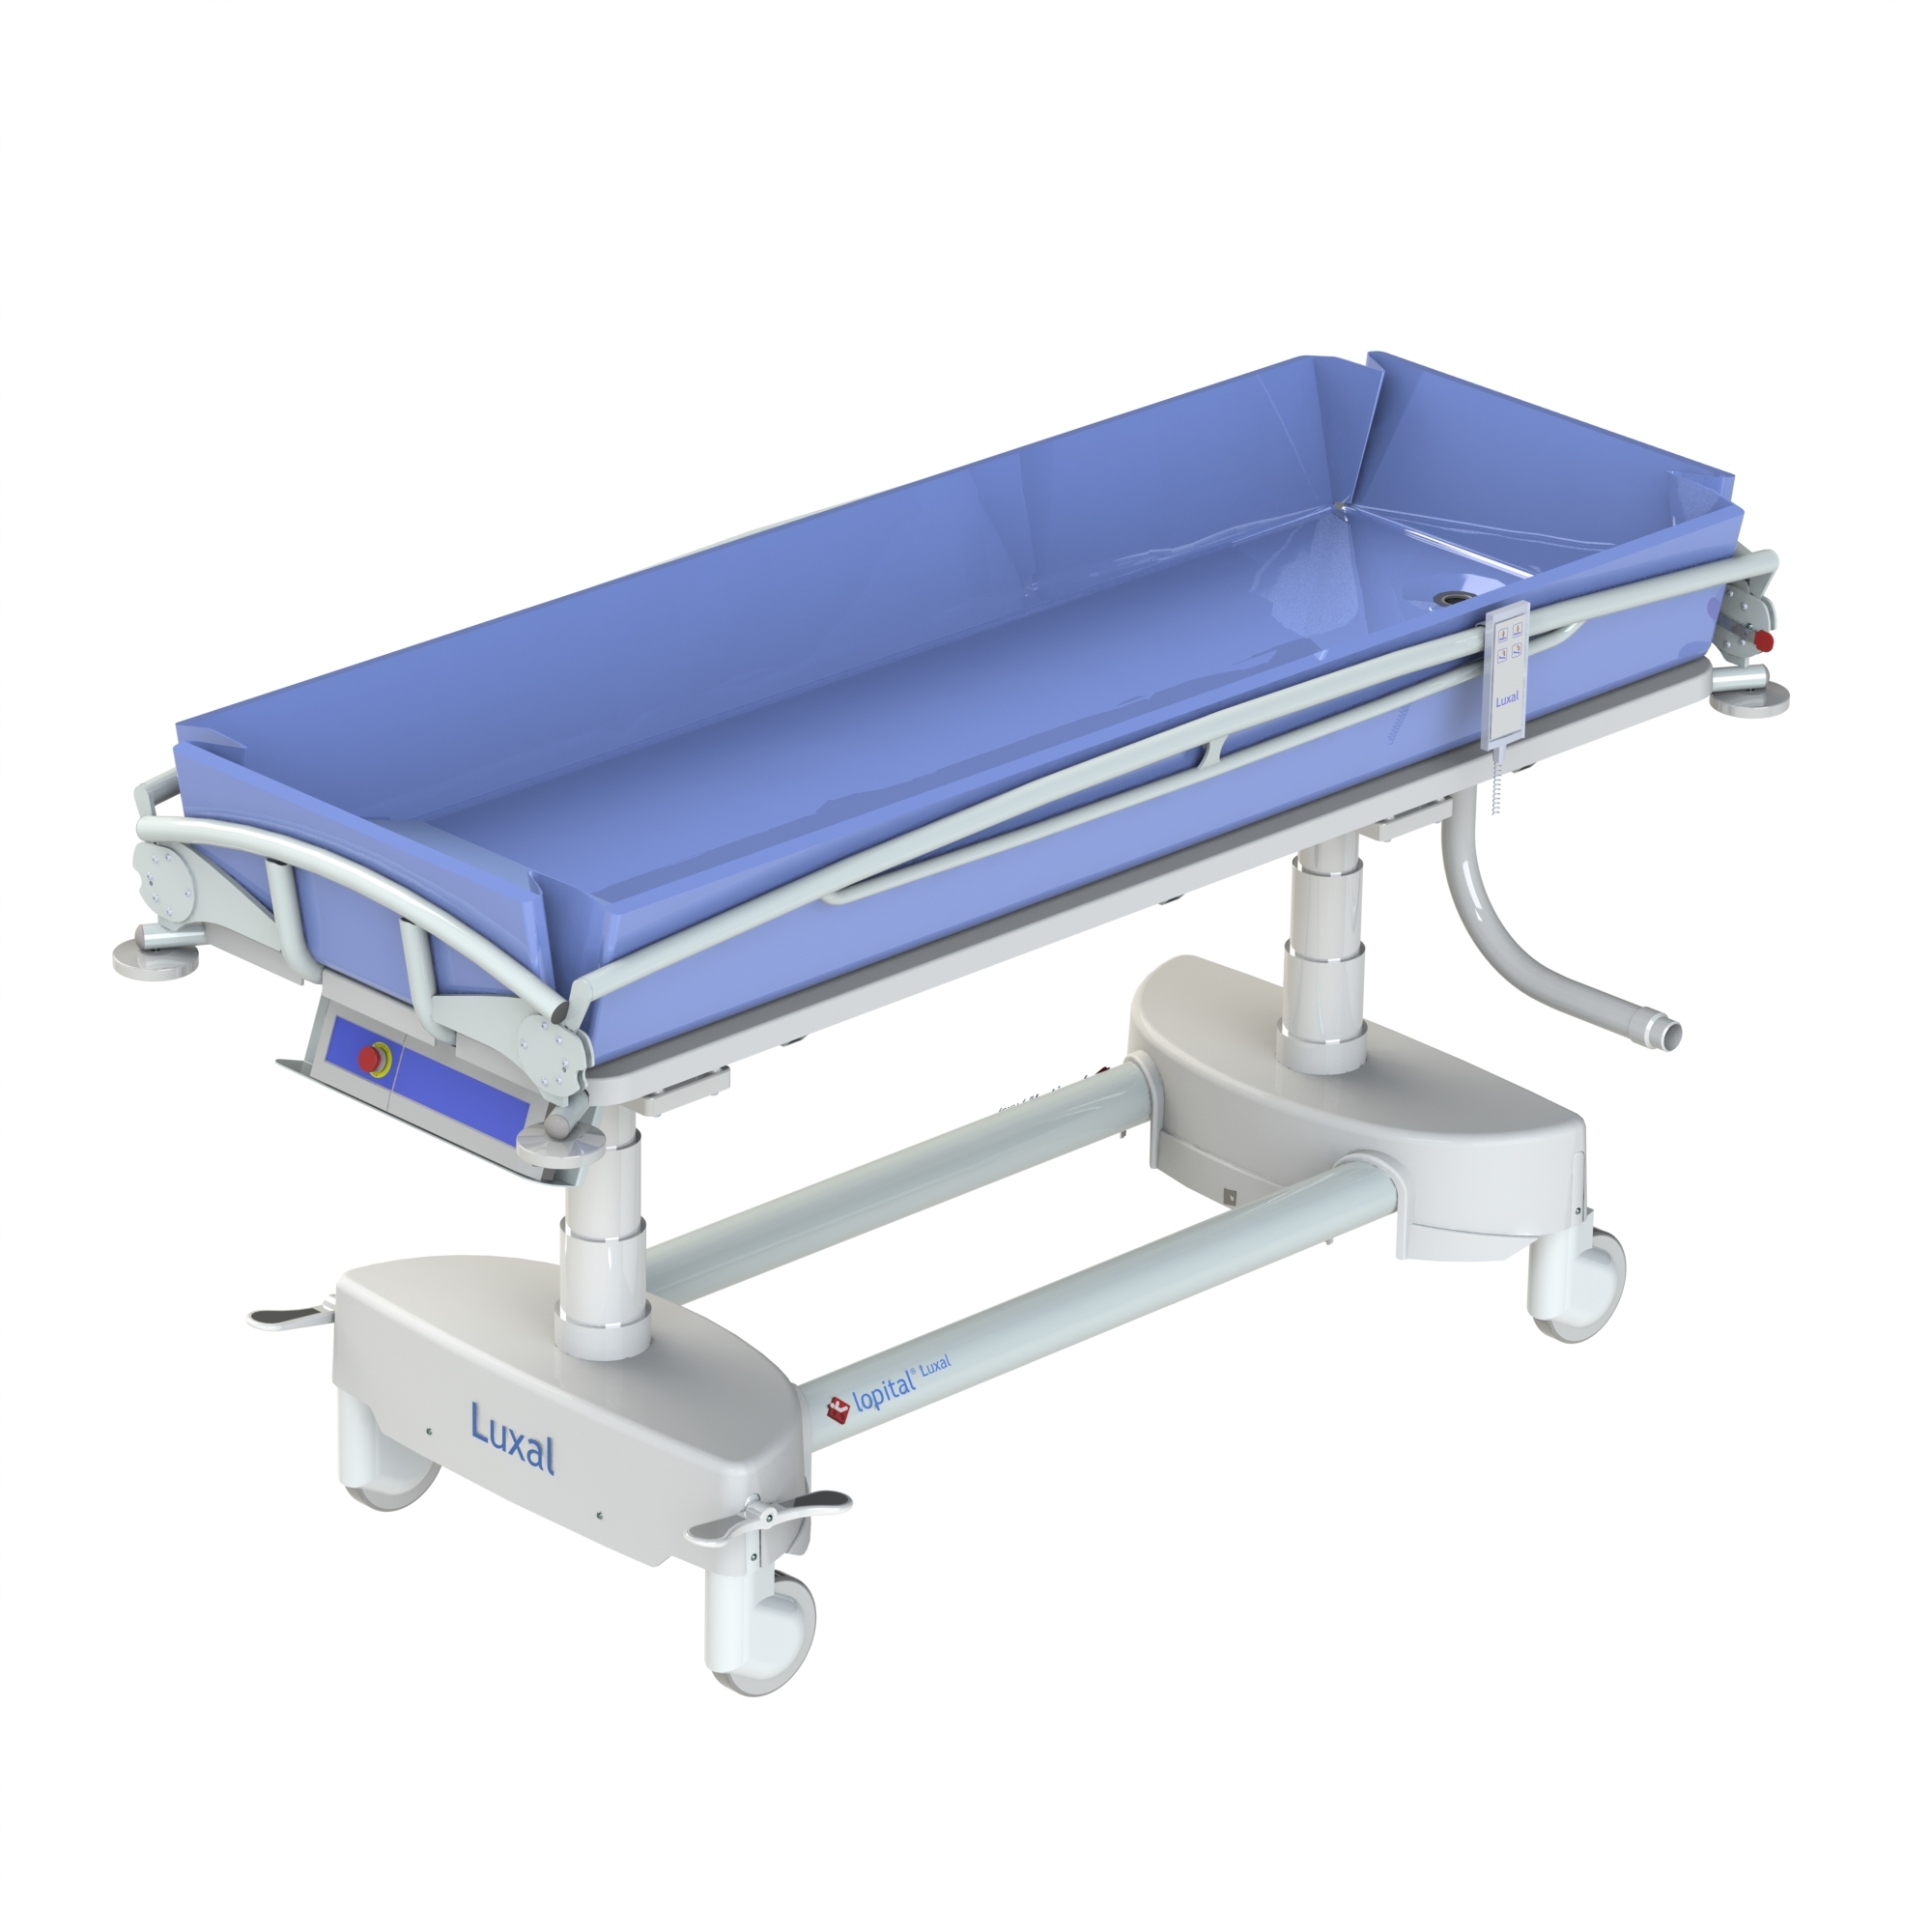 featured portable solutions bay options image hygiene trolley custom shower